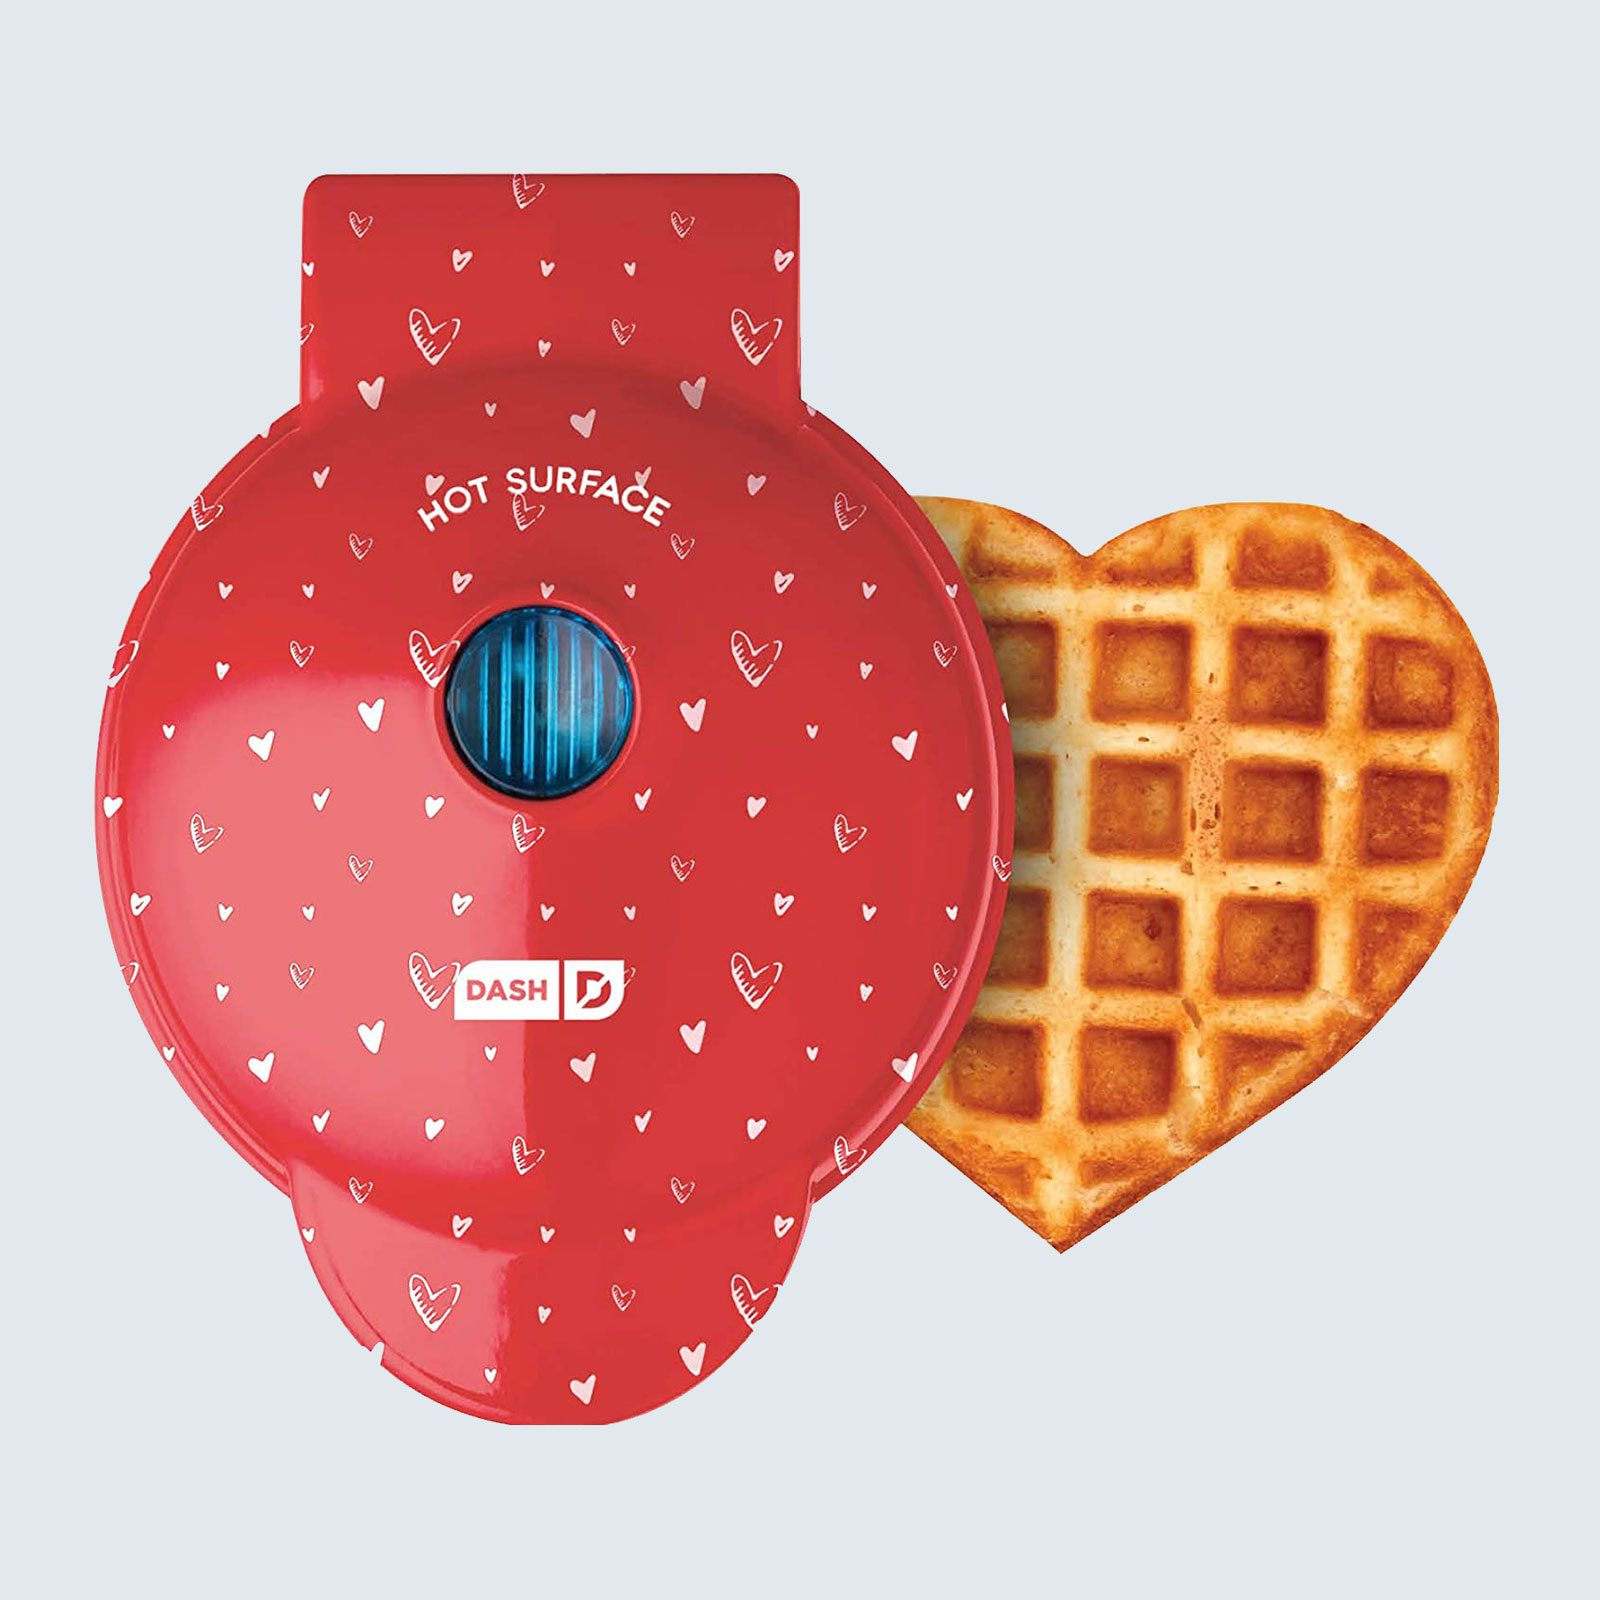 For the sweetest heart: Dash Mini Heart Waffle Maker